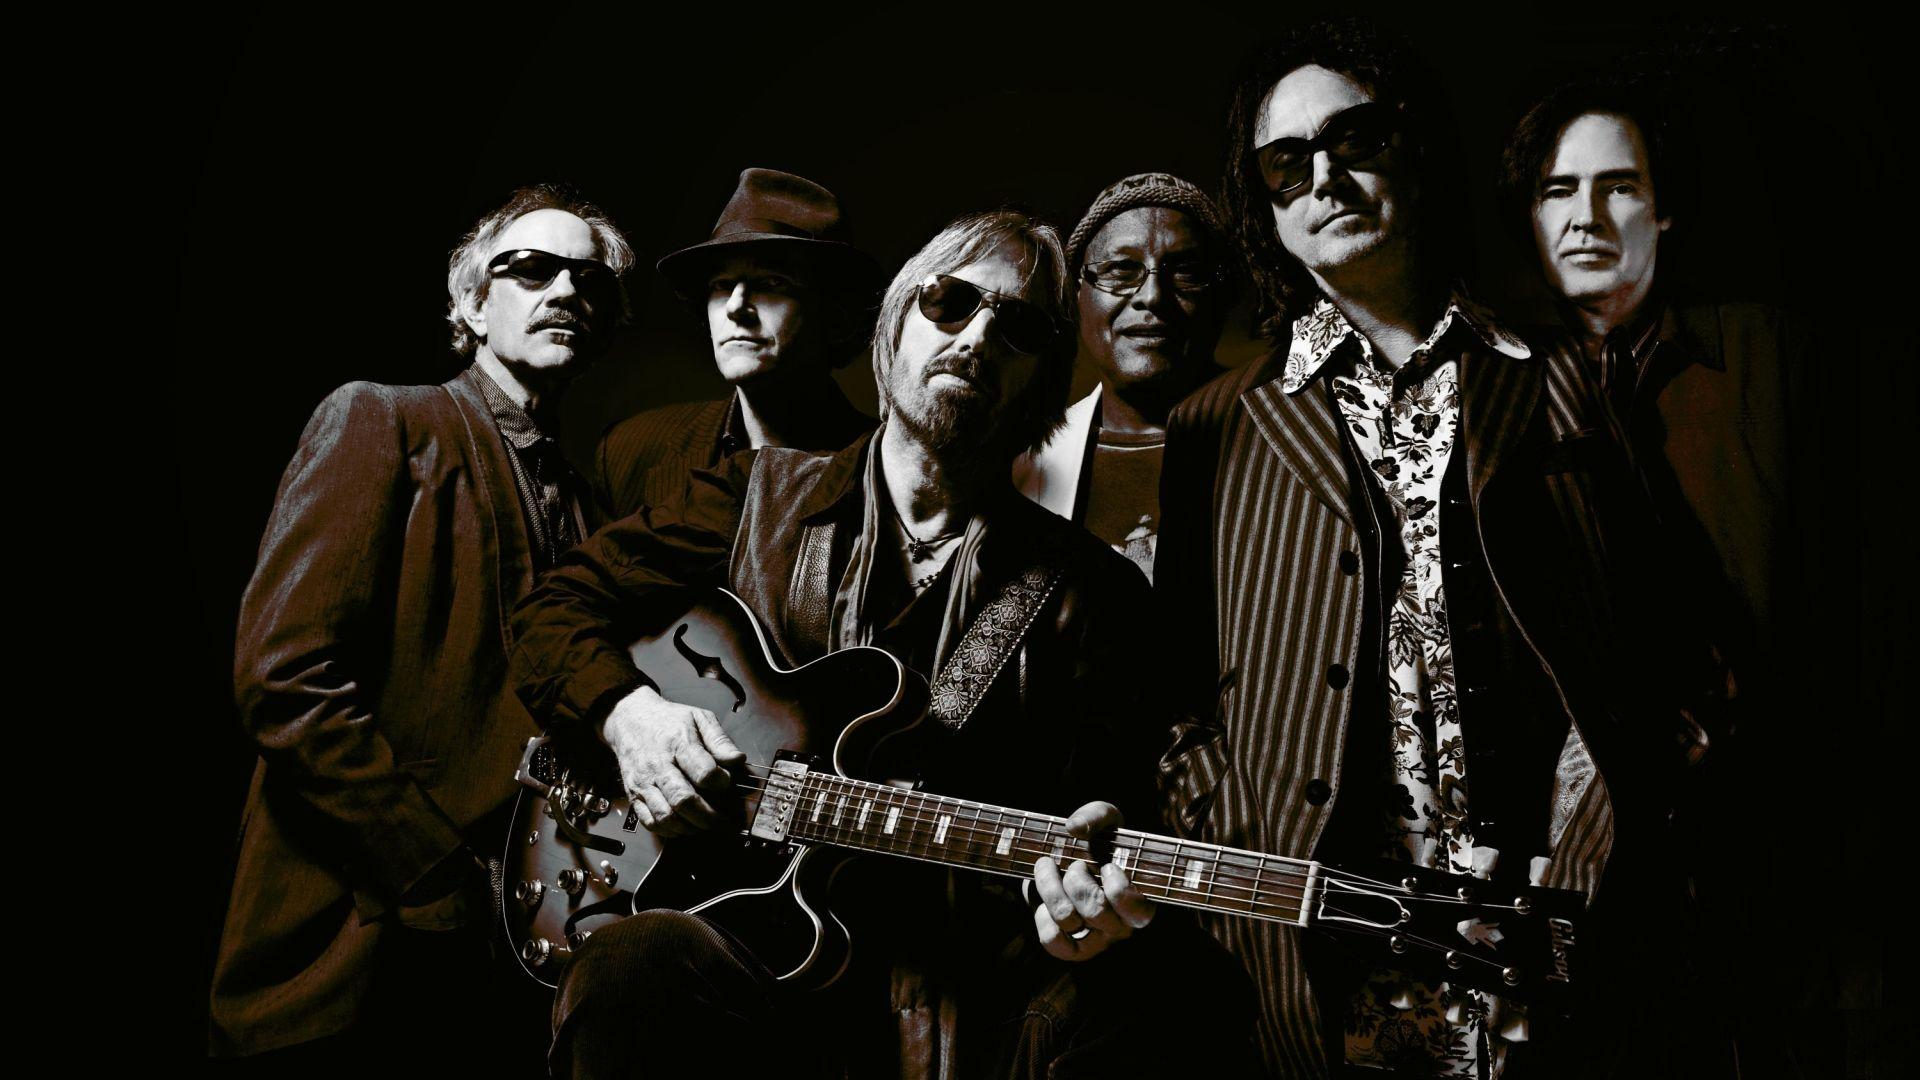 Tom Petty Wallpapers 1920x1080